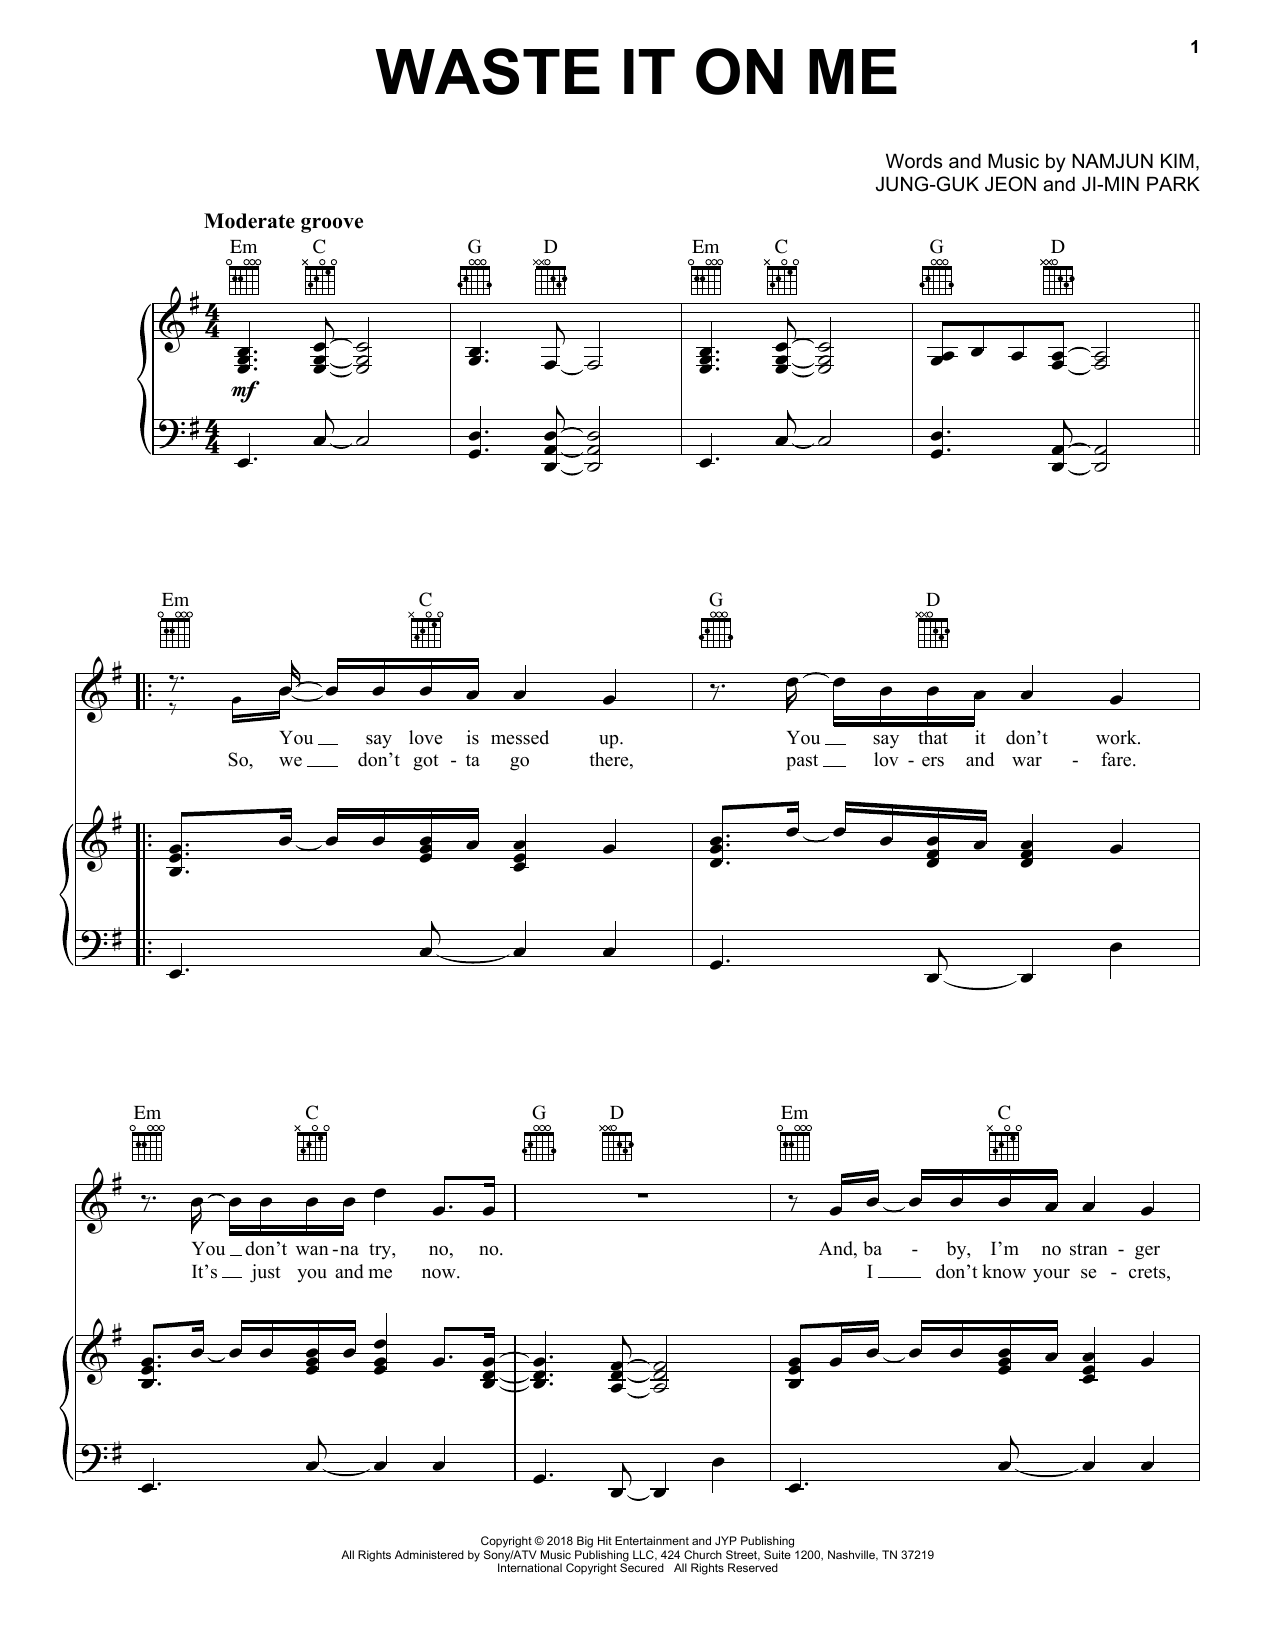 Steve Aoki 'Waste It On Me (feat  BTS)' Sheet Music Notes, Chords |  Download Printable Piano, Vocal & Guitar (Right-Hand Melody) - SKU: 403912